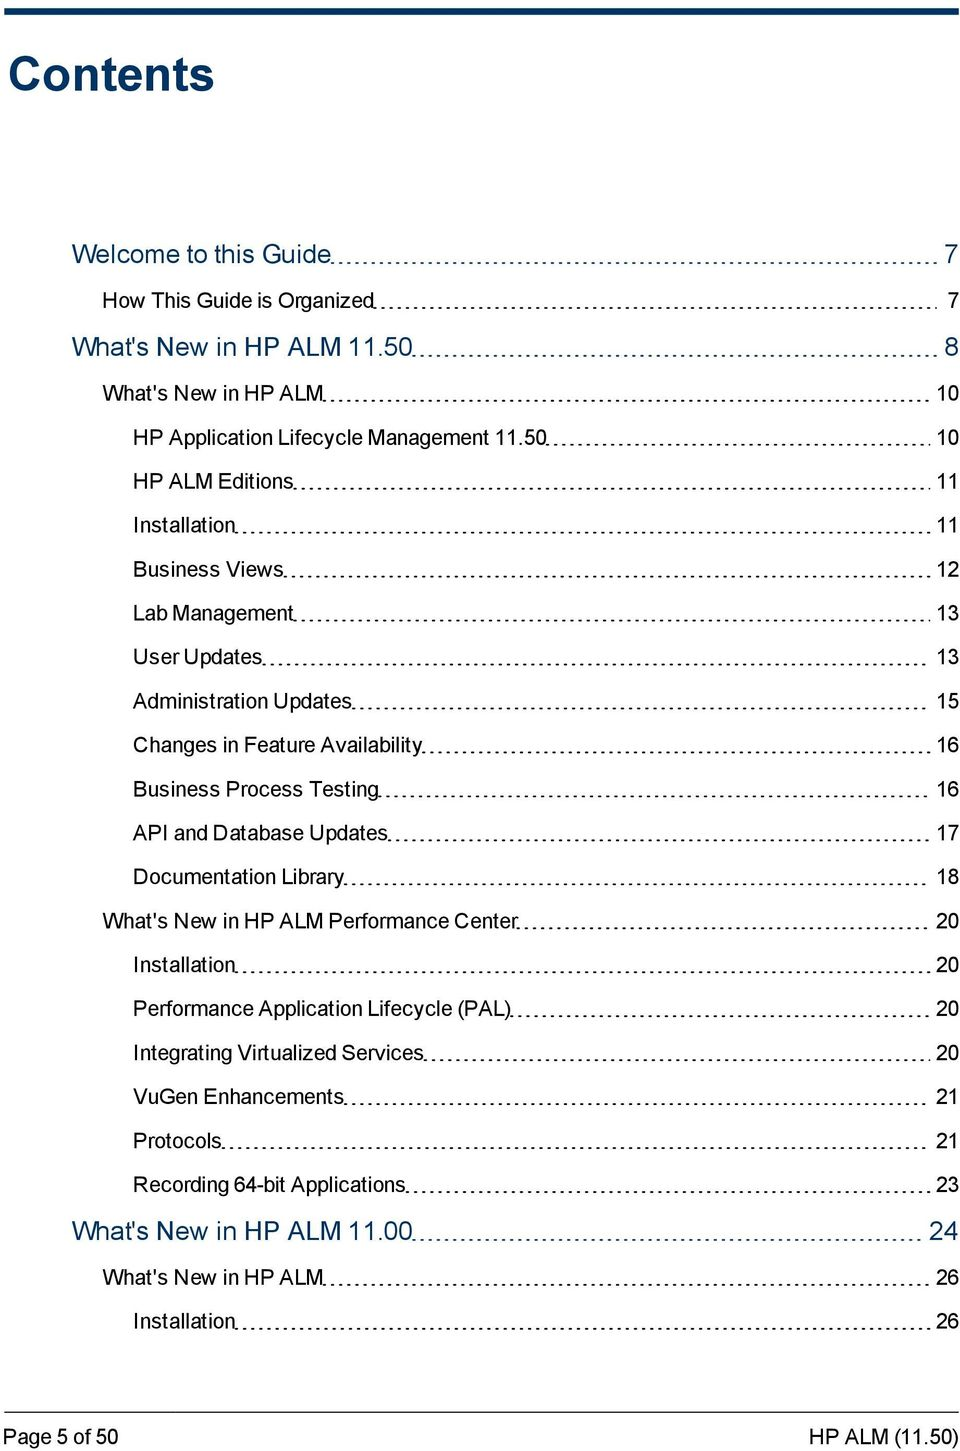 Process Testing 16 API and Database Updates 17 Documentation Library 18 What's New in HP ALM Performance Center 20 Installation 20 Performance Application Lifecycle